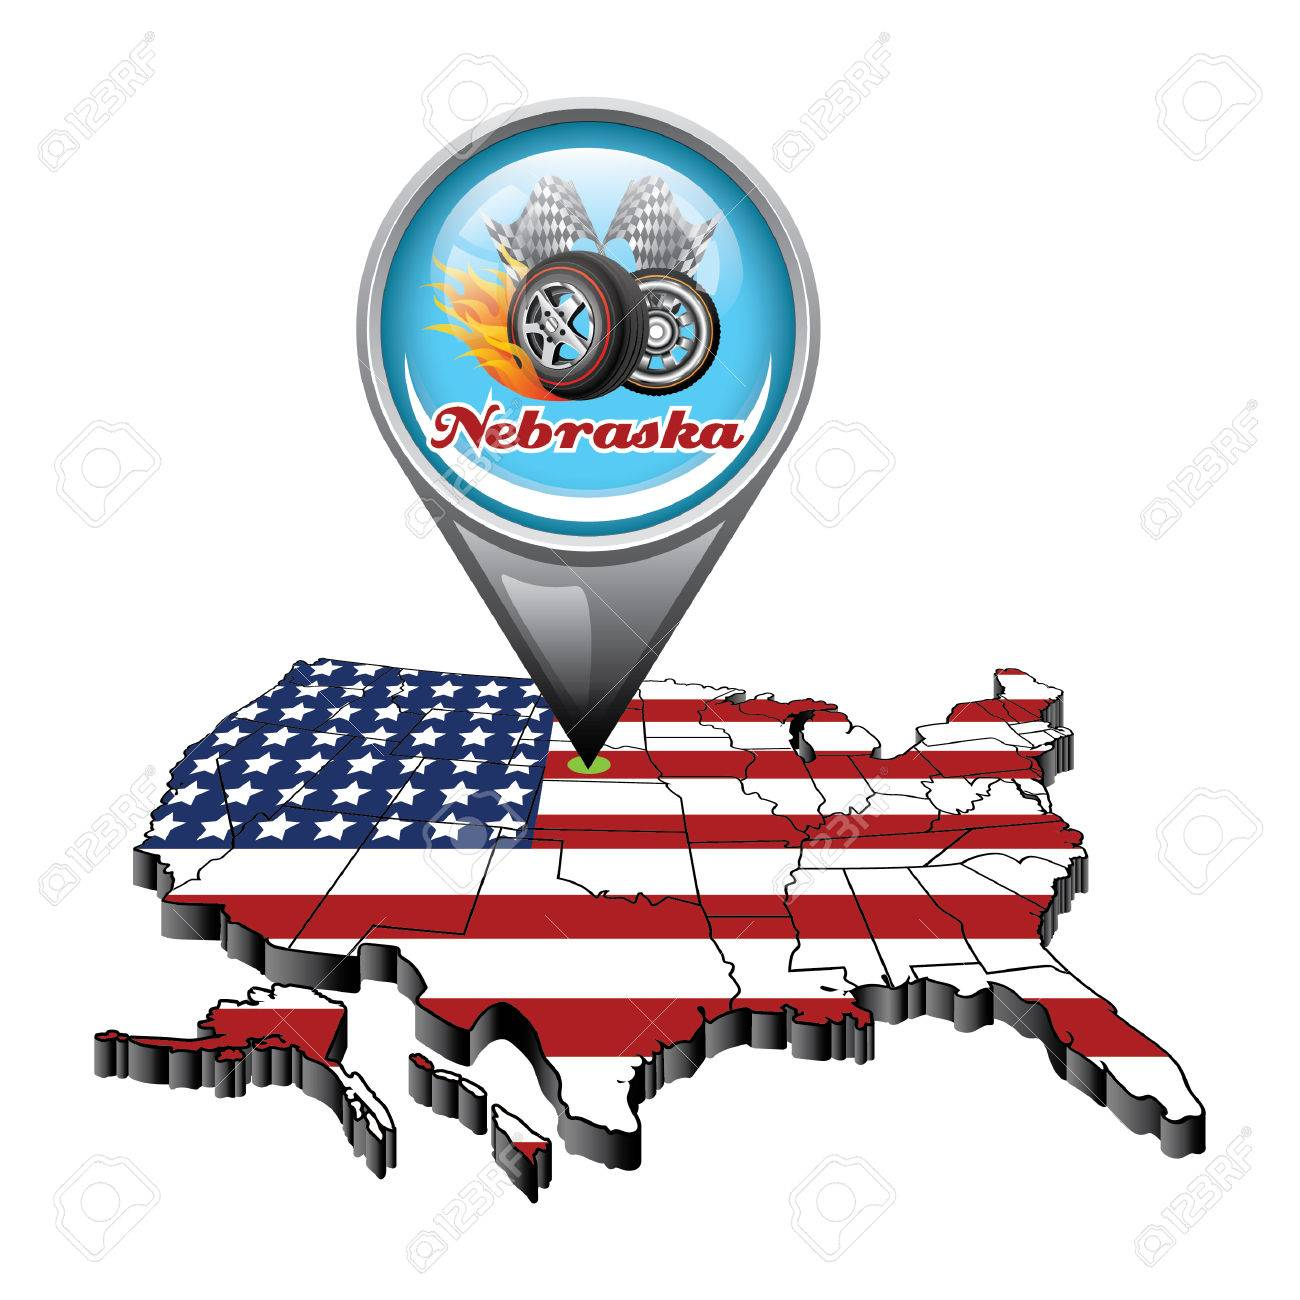 US Map With Pin Showing Nebraska State Royalty Free Cliparts - Nebraska on us map